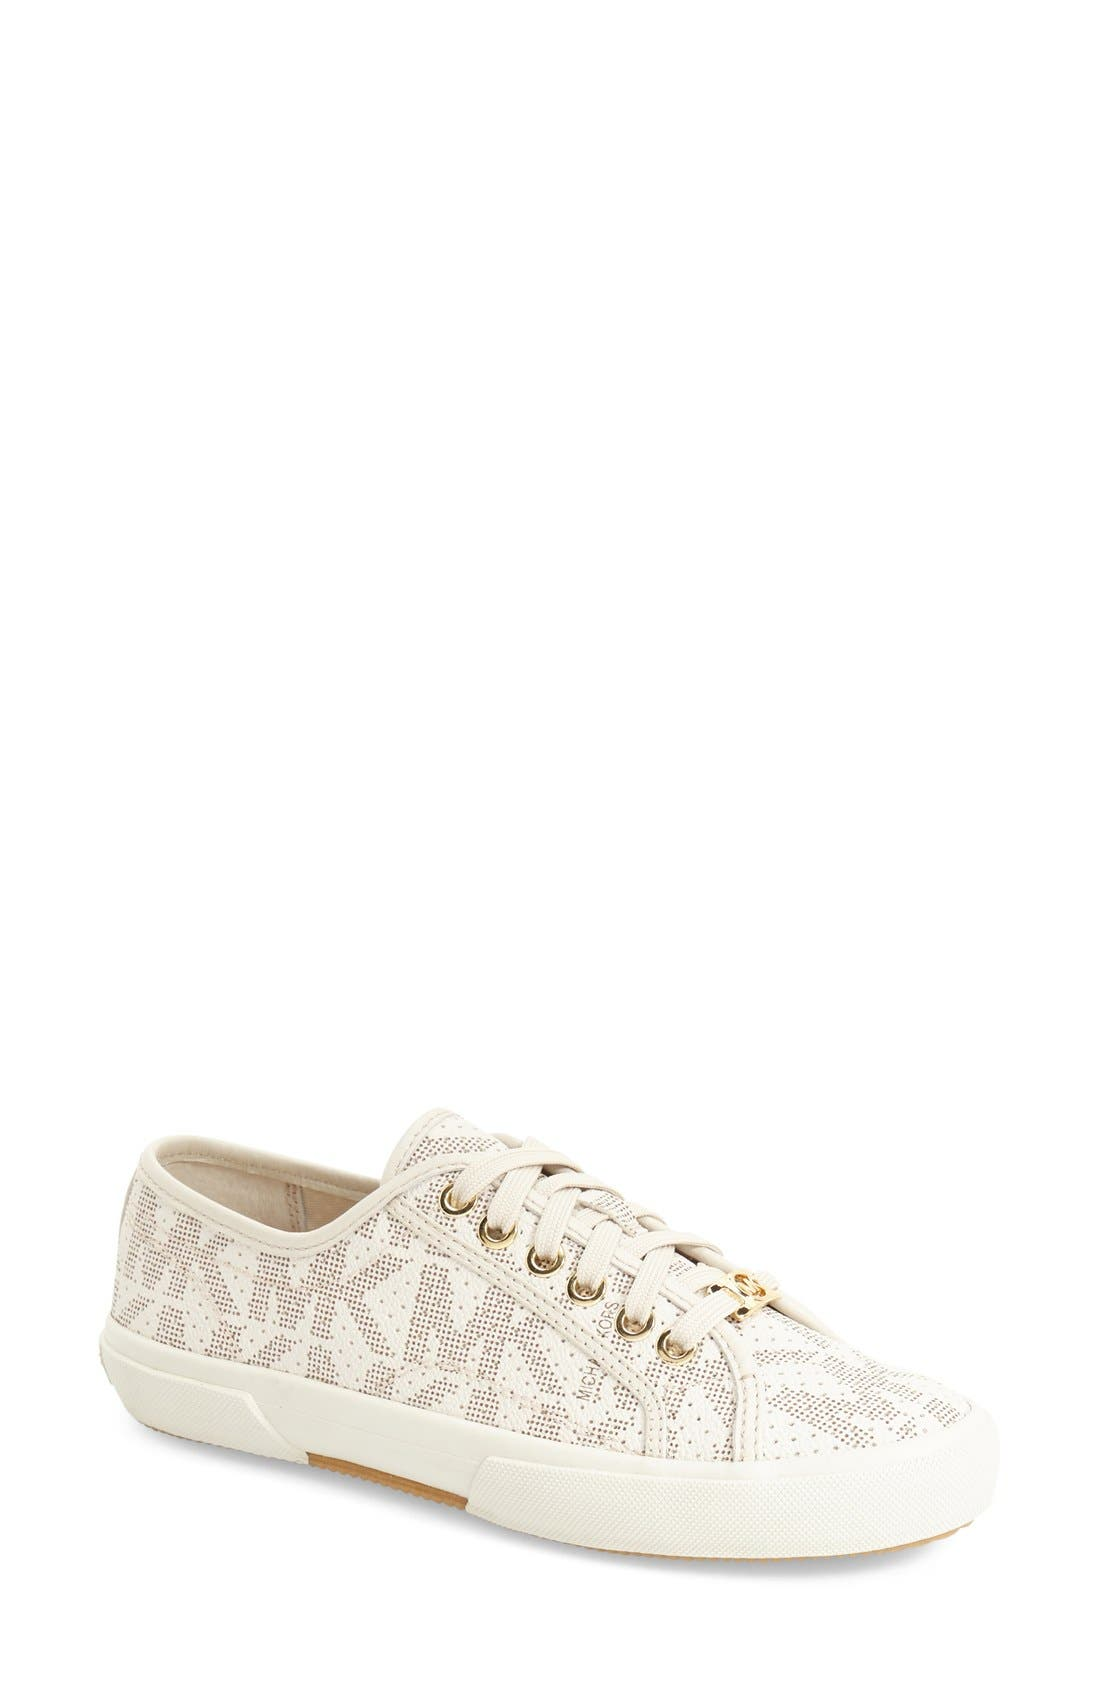 Alternate Image 1 Selected - MICHAEL Michael Kors 'Boerum' Sneaker